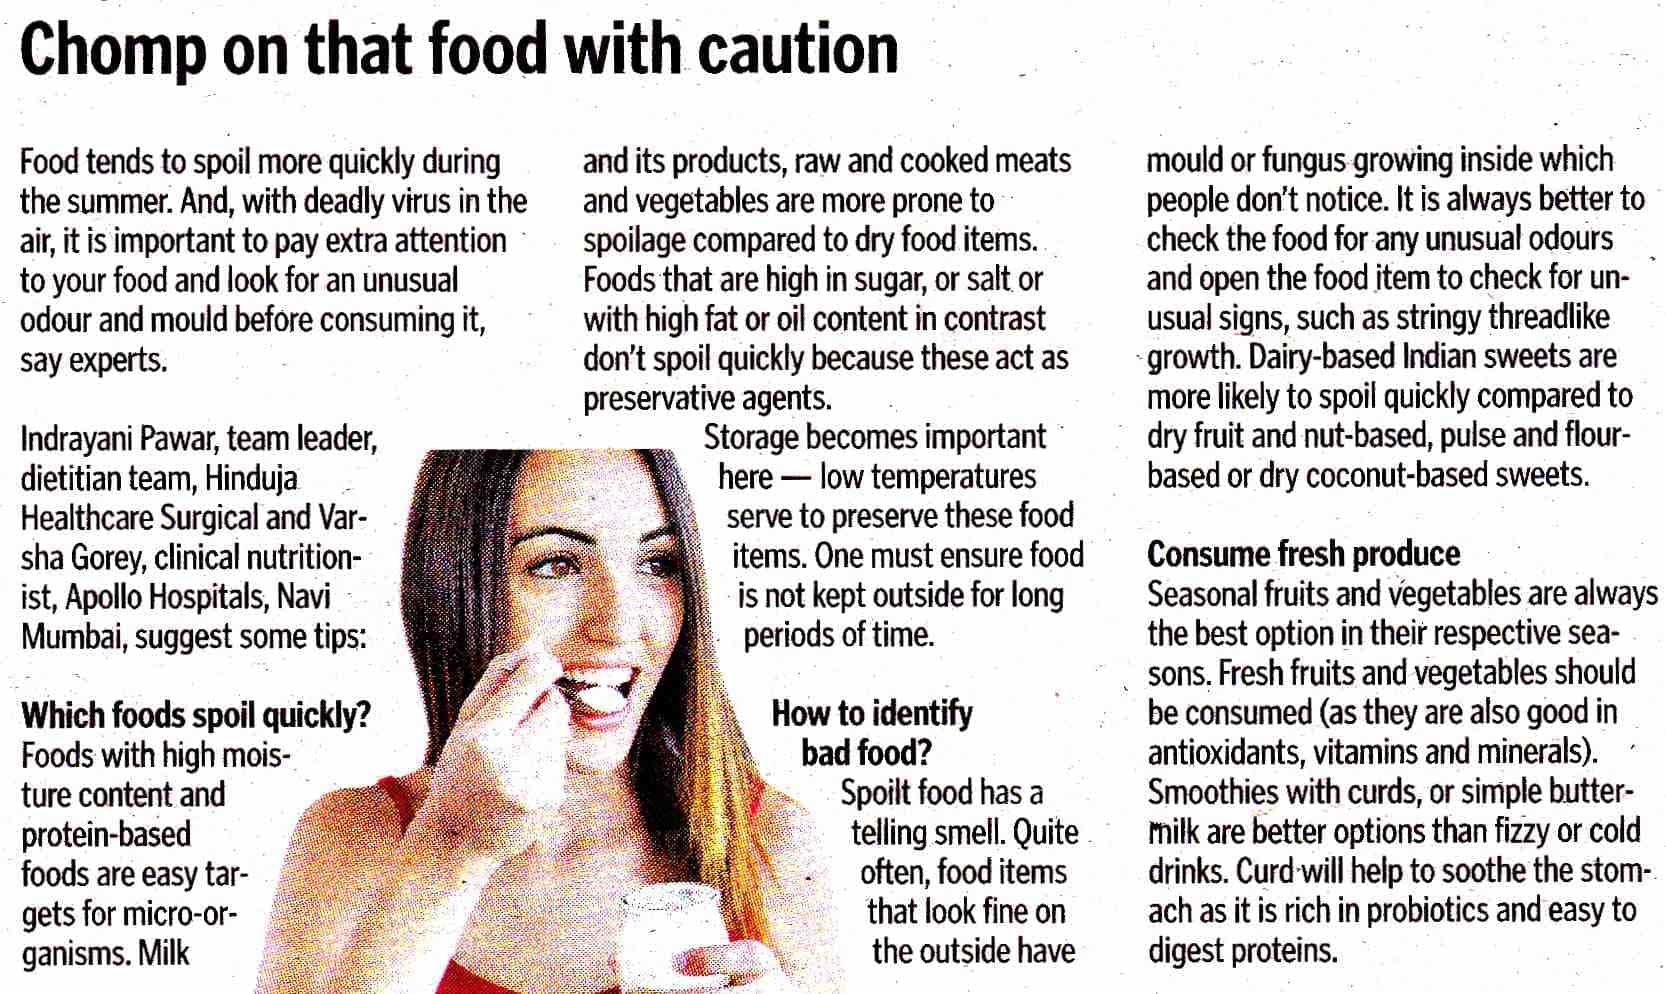 Comp on that food with caution - Hinduja Healthcare